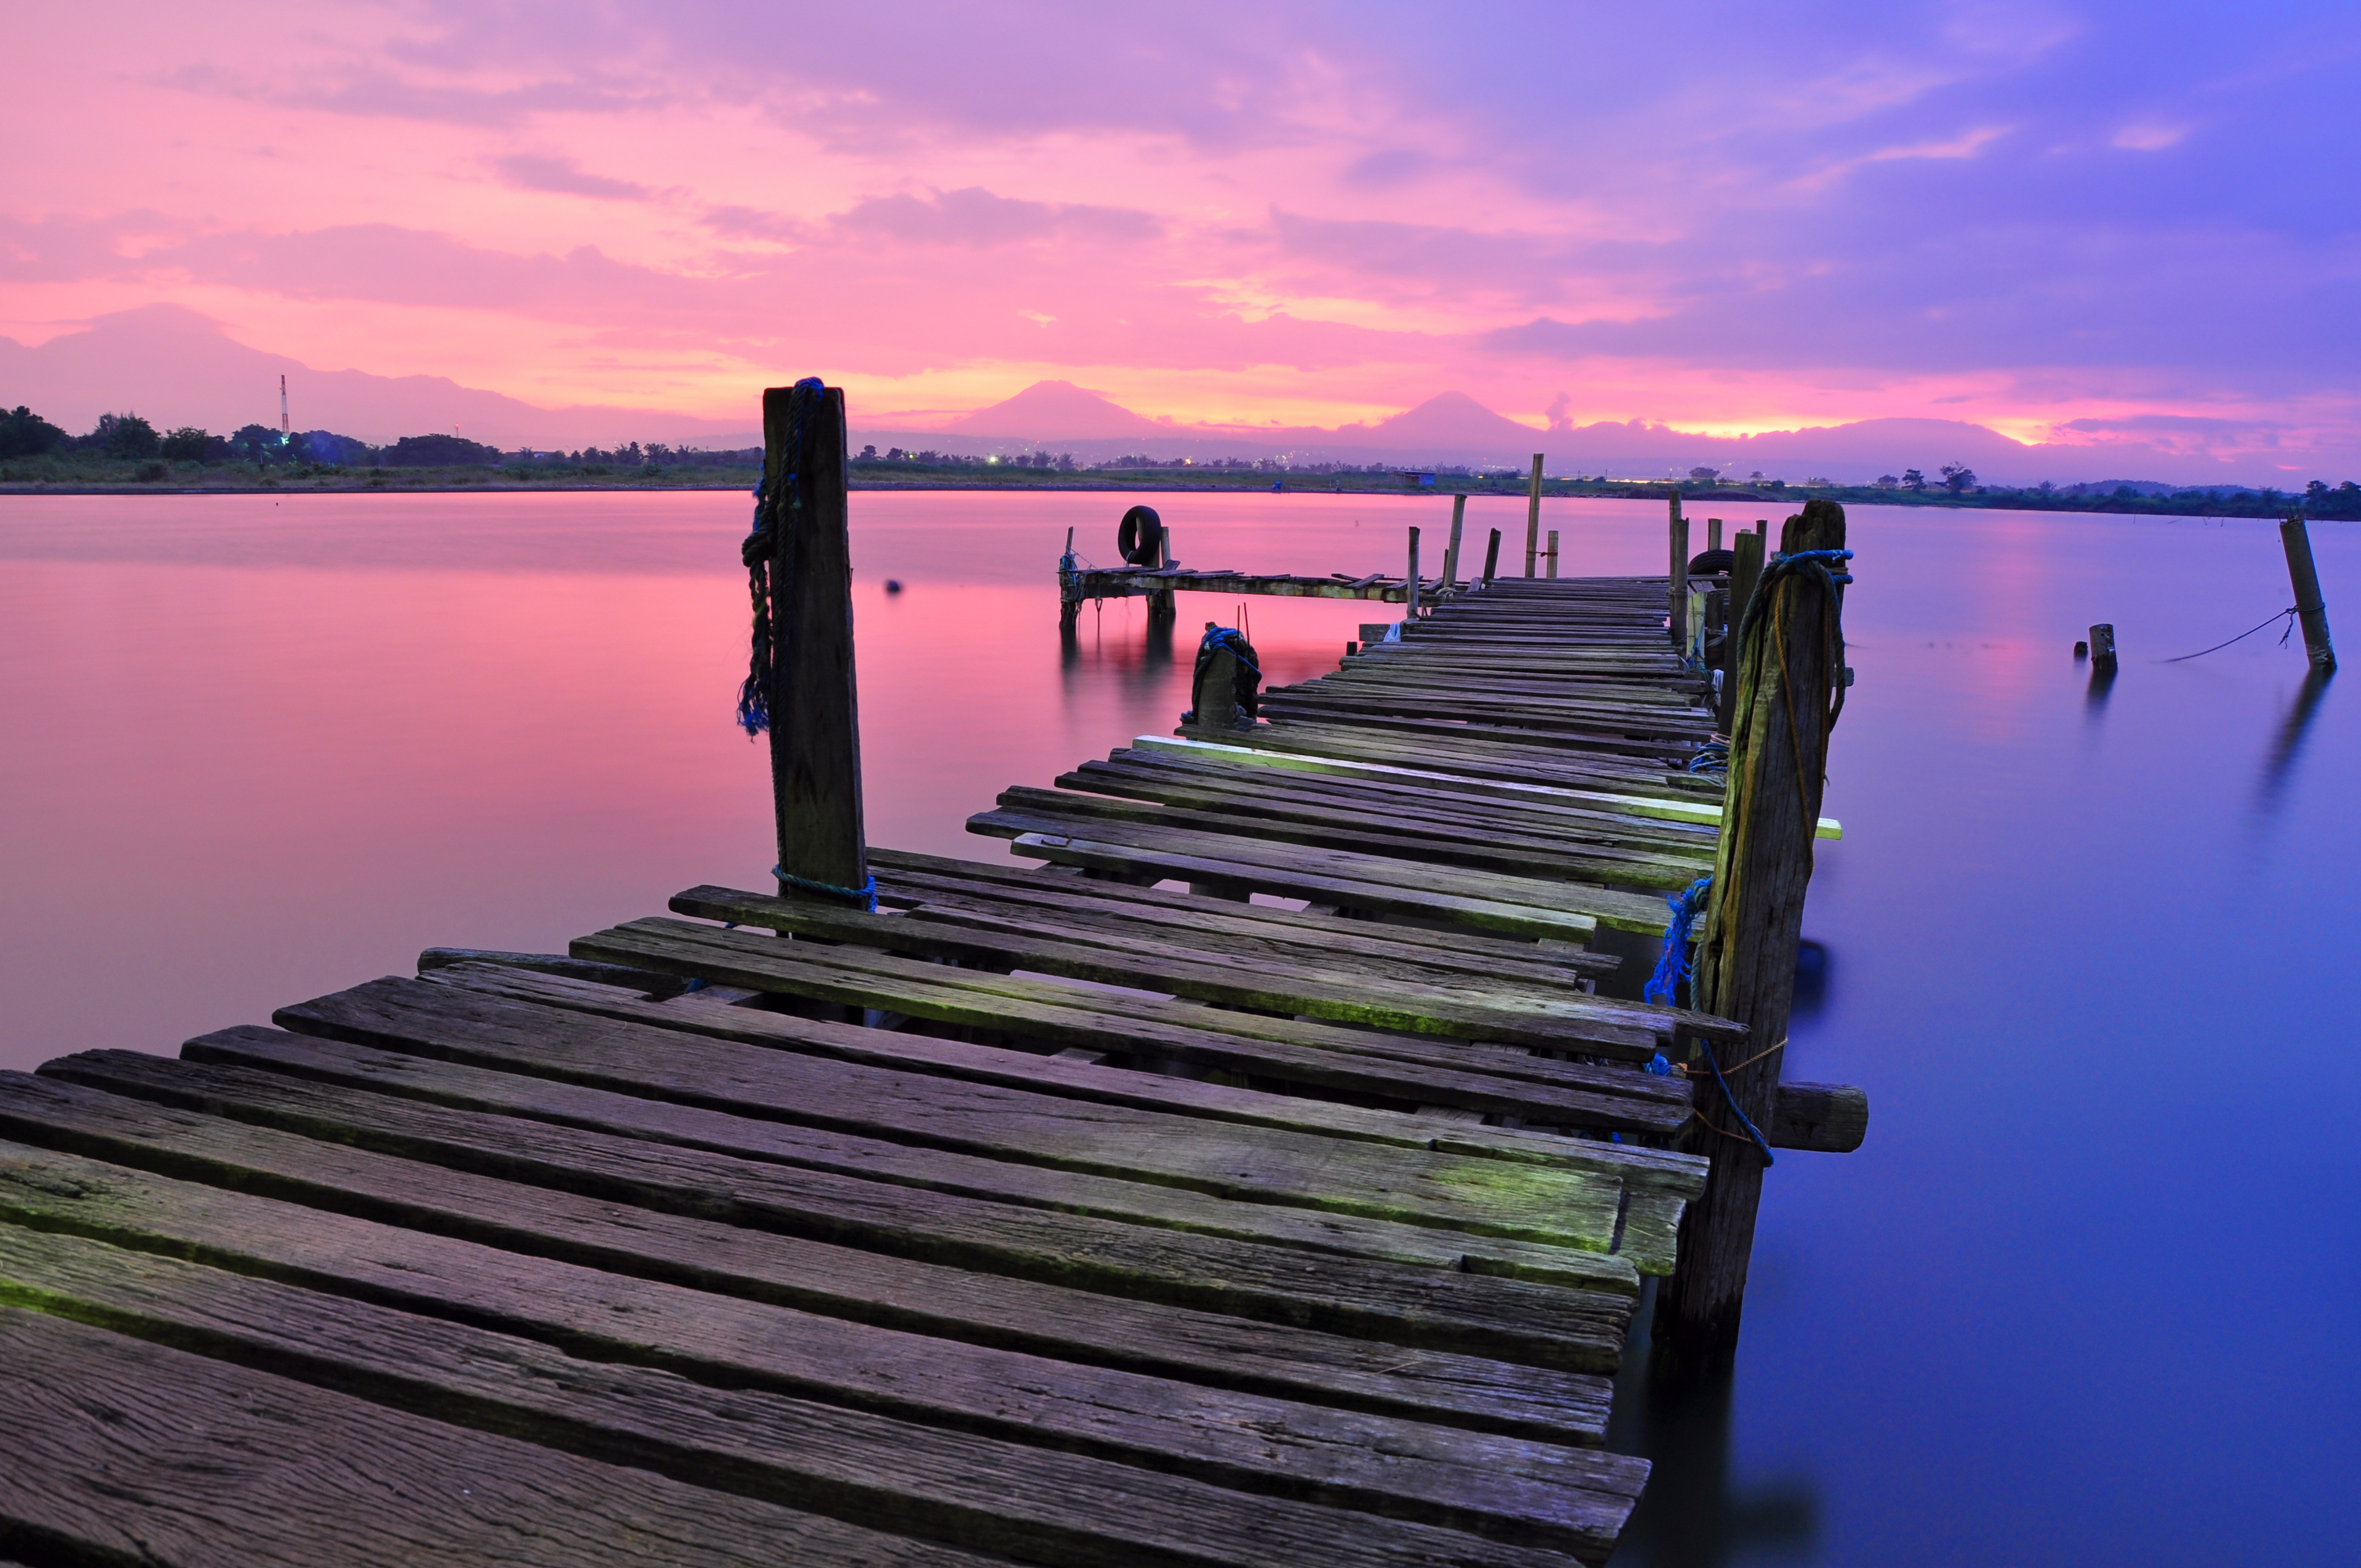 Spring, tranquility, peace, dock, pier, lake, water, purple, pink, sunset, dusk